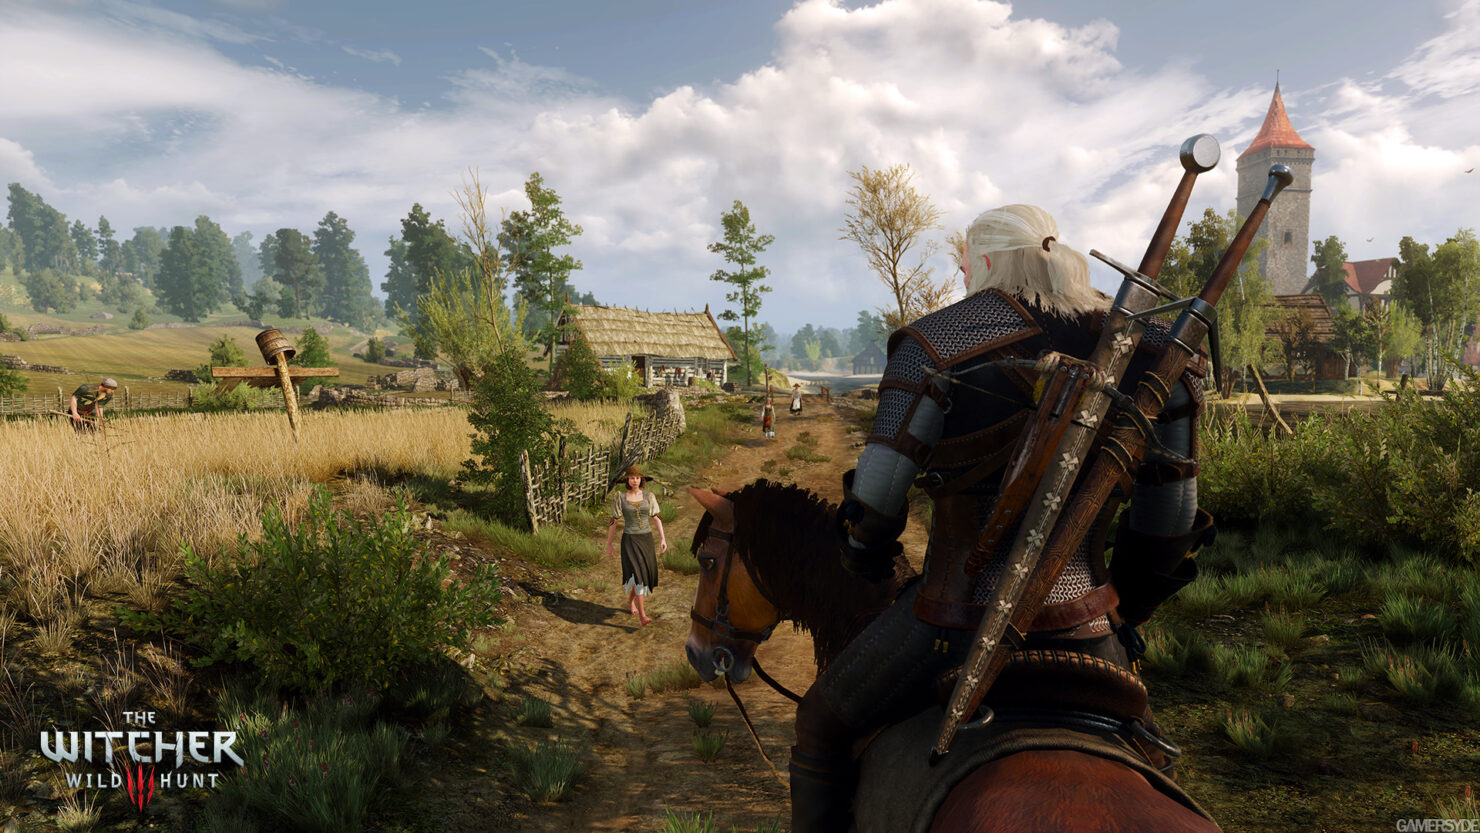 image_the_witcher_3_wild_hunt-27433-2651_0007